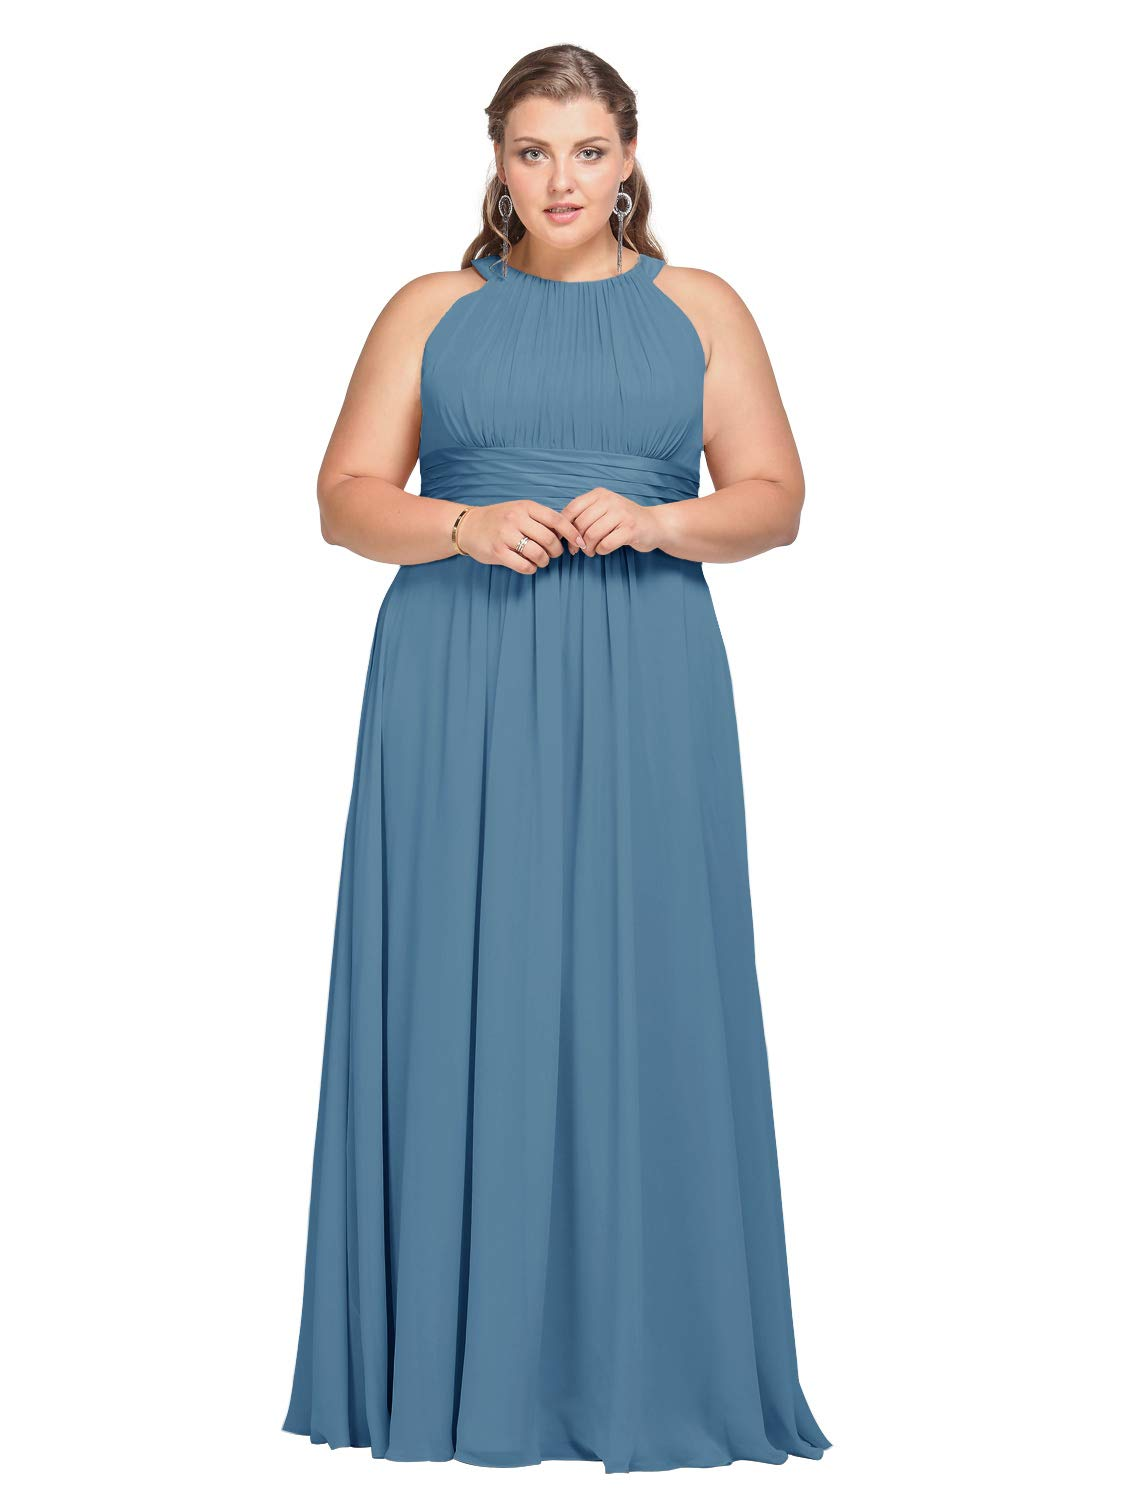 AW Bridal Plus Size Long Bridesmaid Dresses Jewel Neck Prom Dresses Modest  Chiffon Evening Formal Dresses, Dusty Blue, US22